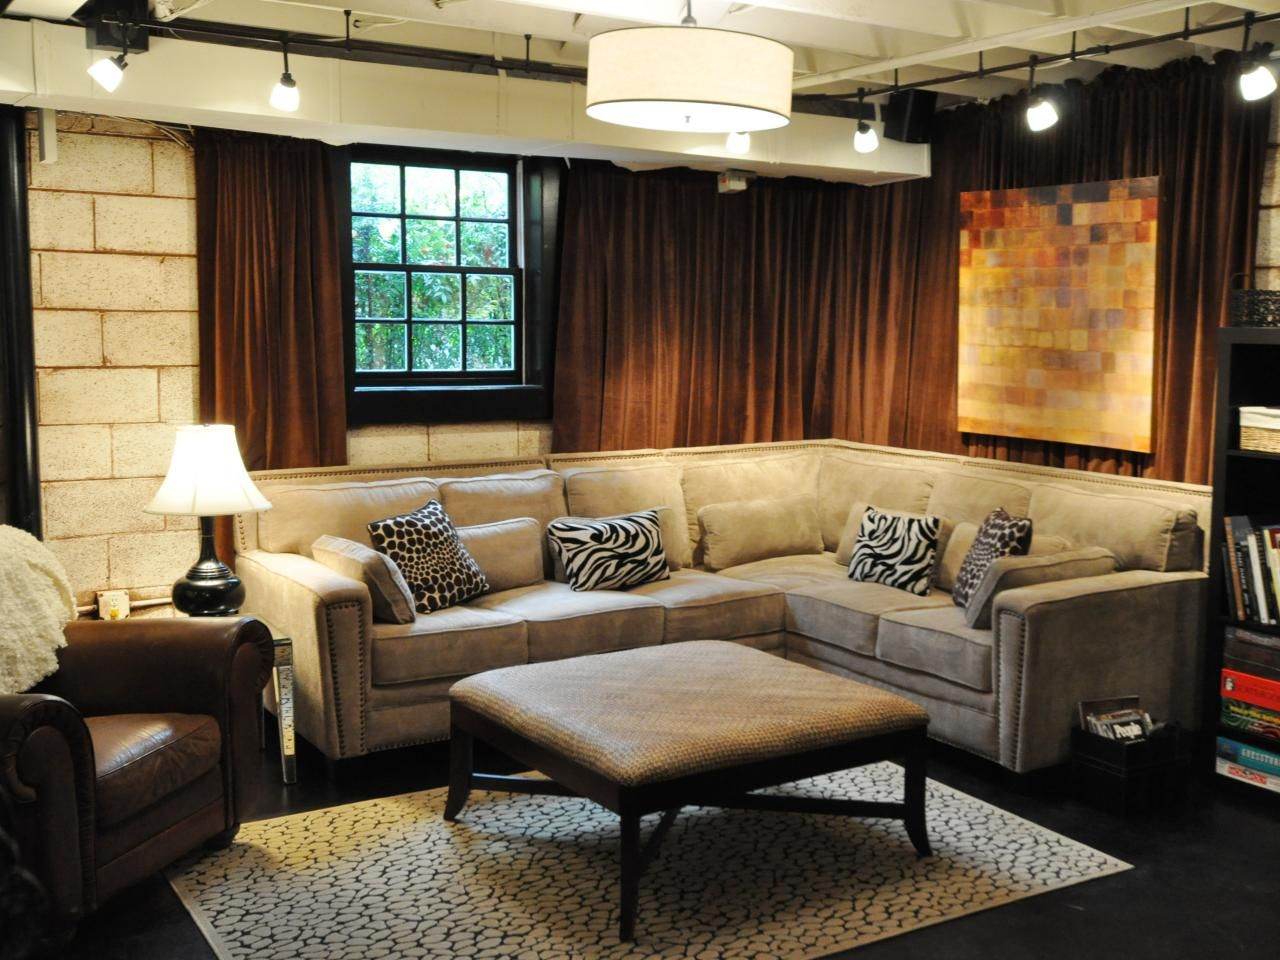 unfinished basement lighting ideas. 10 Basements For The Whole Family. Track LightingBasement LightingLighting IdeasDrop Ceiling LightingUnfinished Unfinished Basement Lighting Ideas S